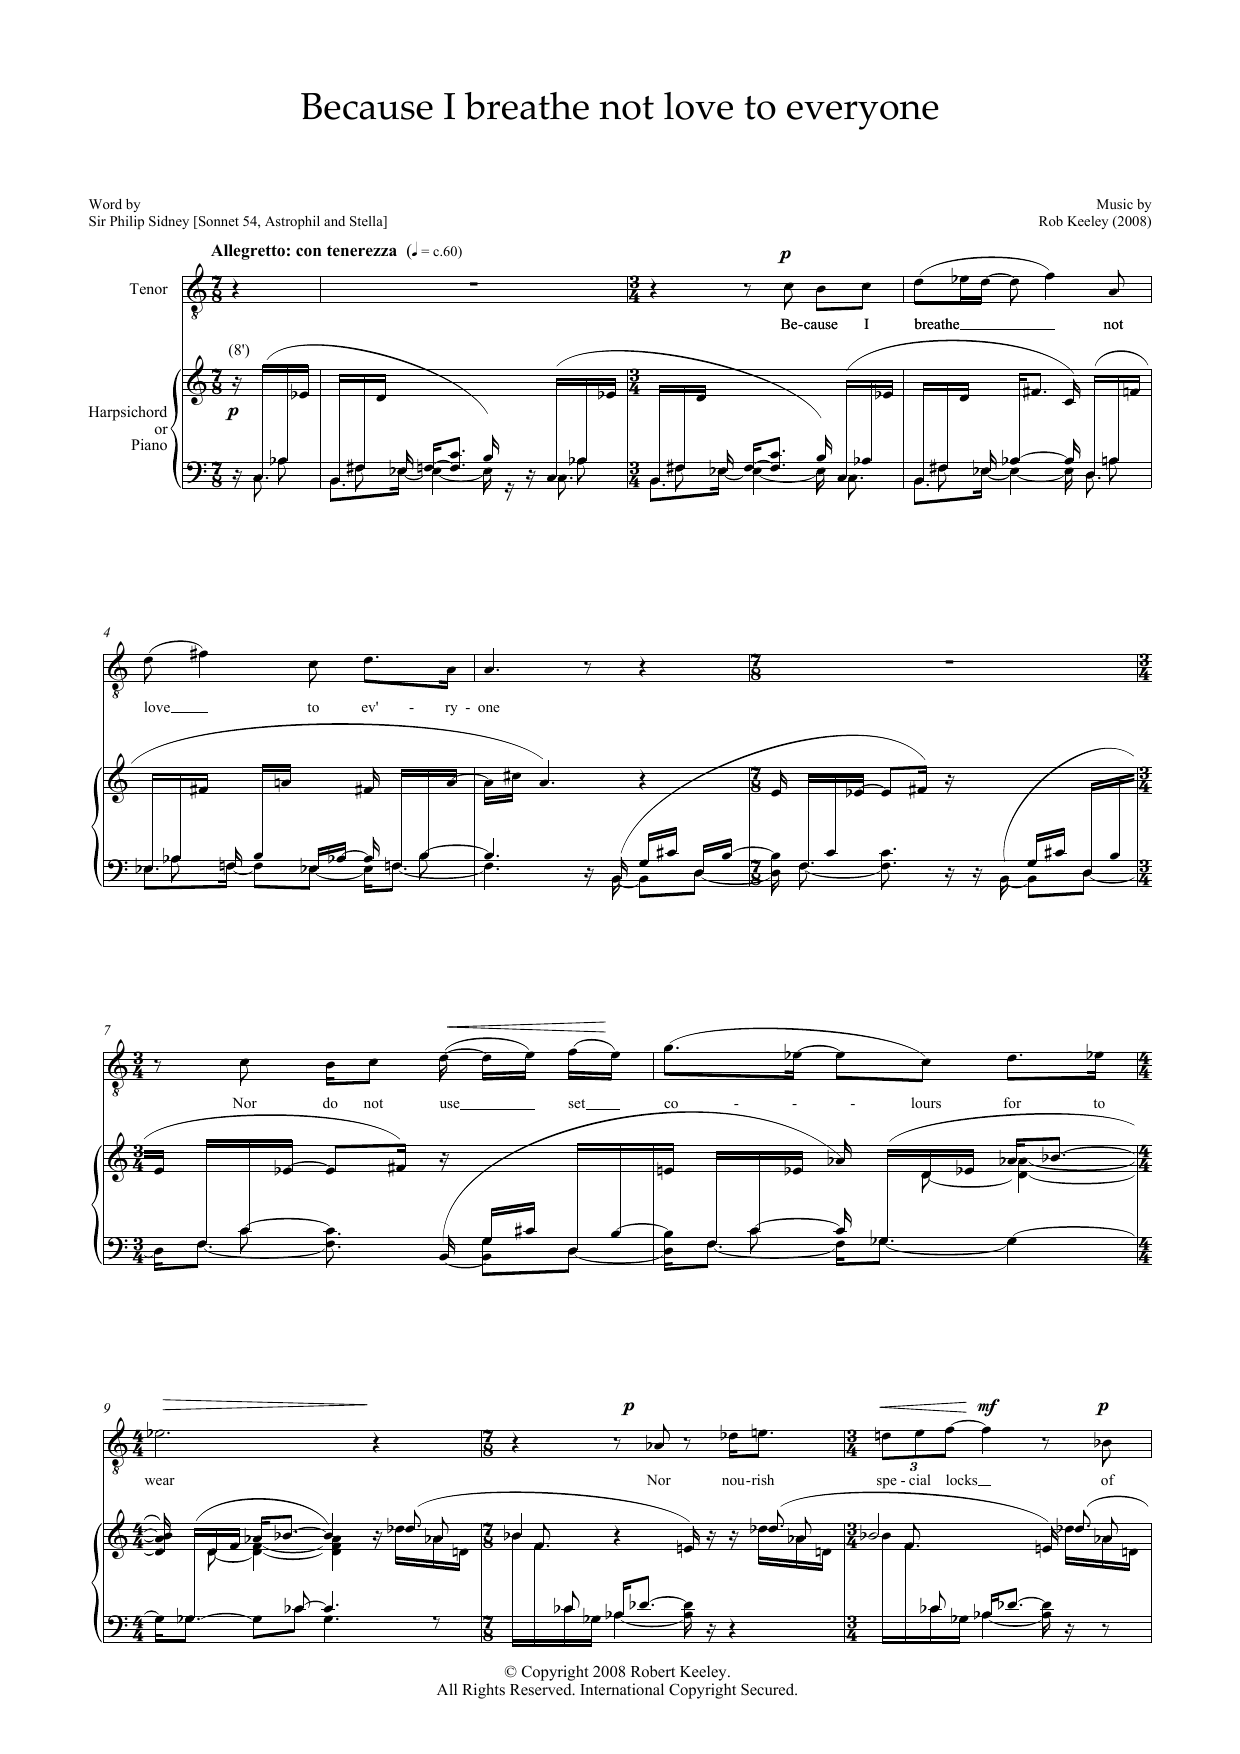 Because I breathe not love to everyone (for tenor & harpsichord) Sheet Music